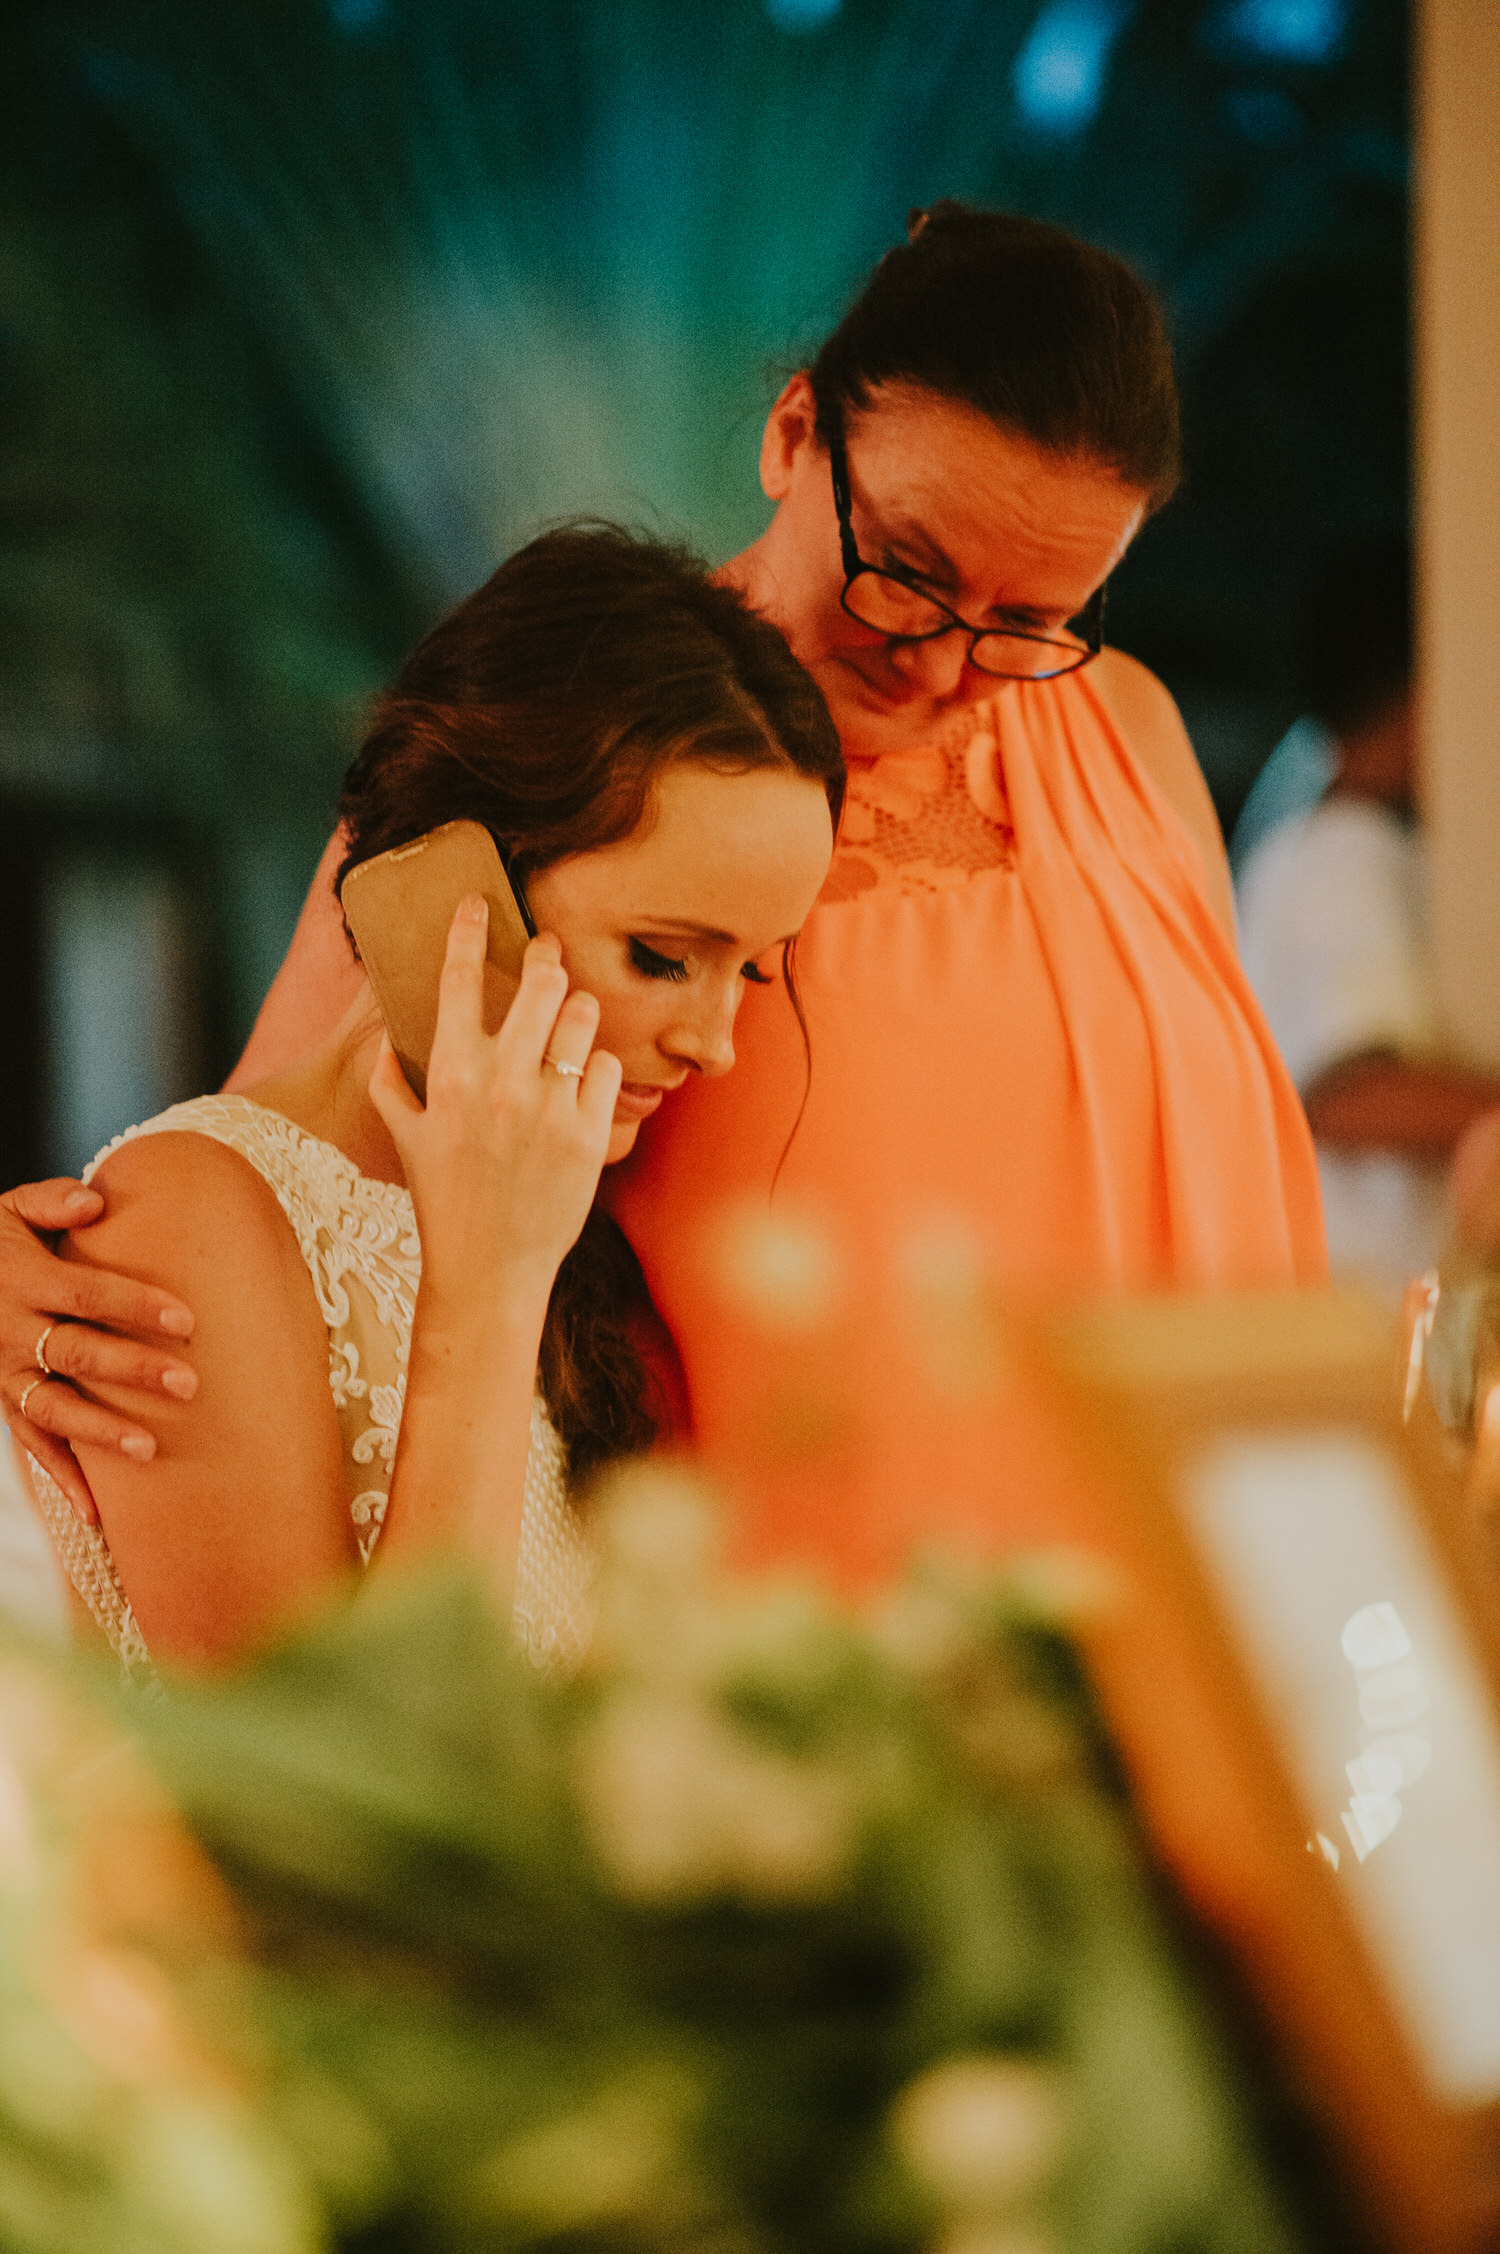 bali wedding destination - the ungasan wedding - bali wedding photographer - diktatphotography - aimee + blake wedding - 120